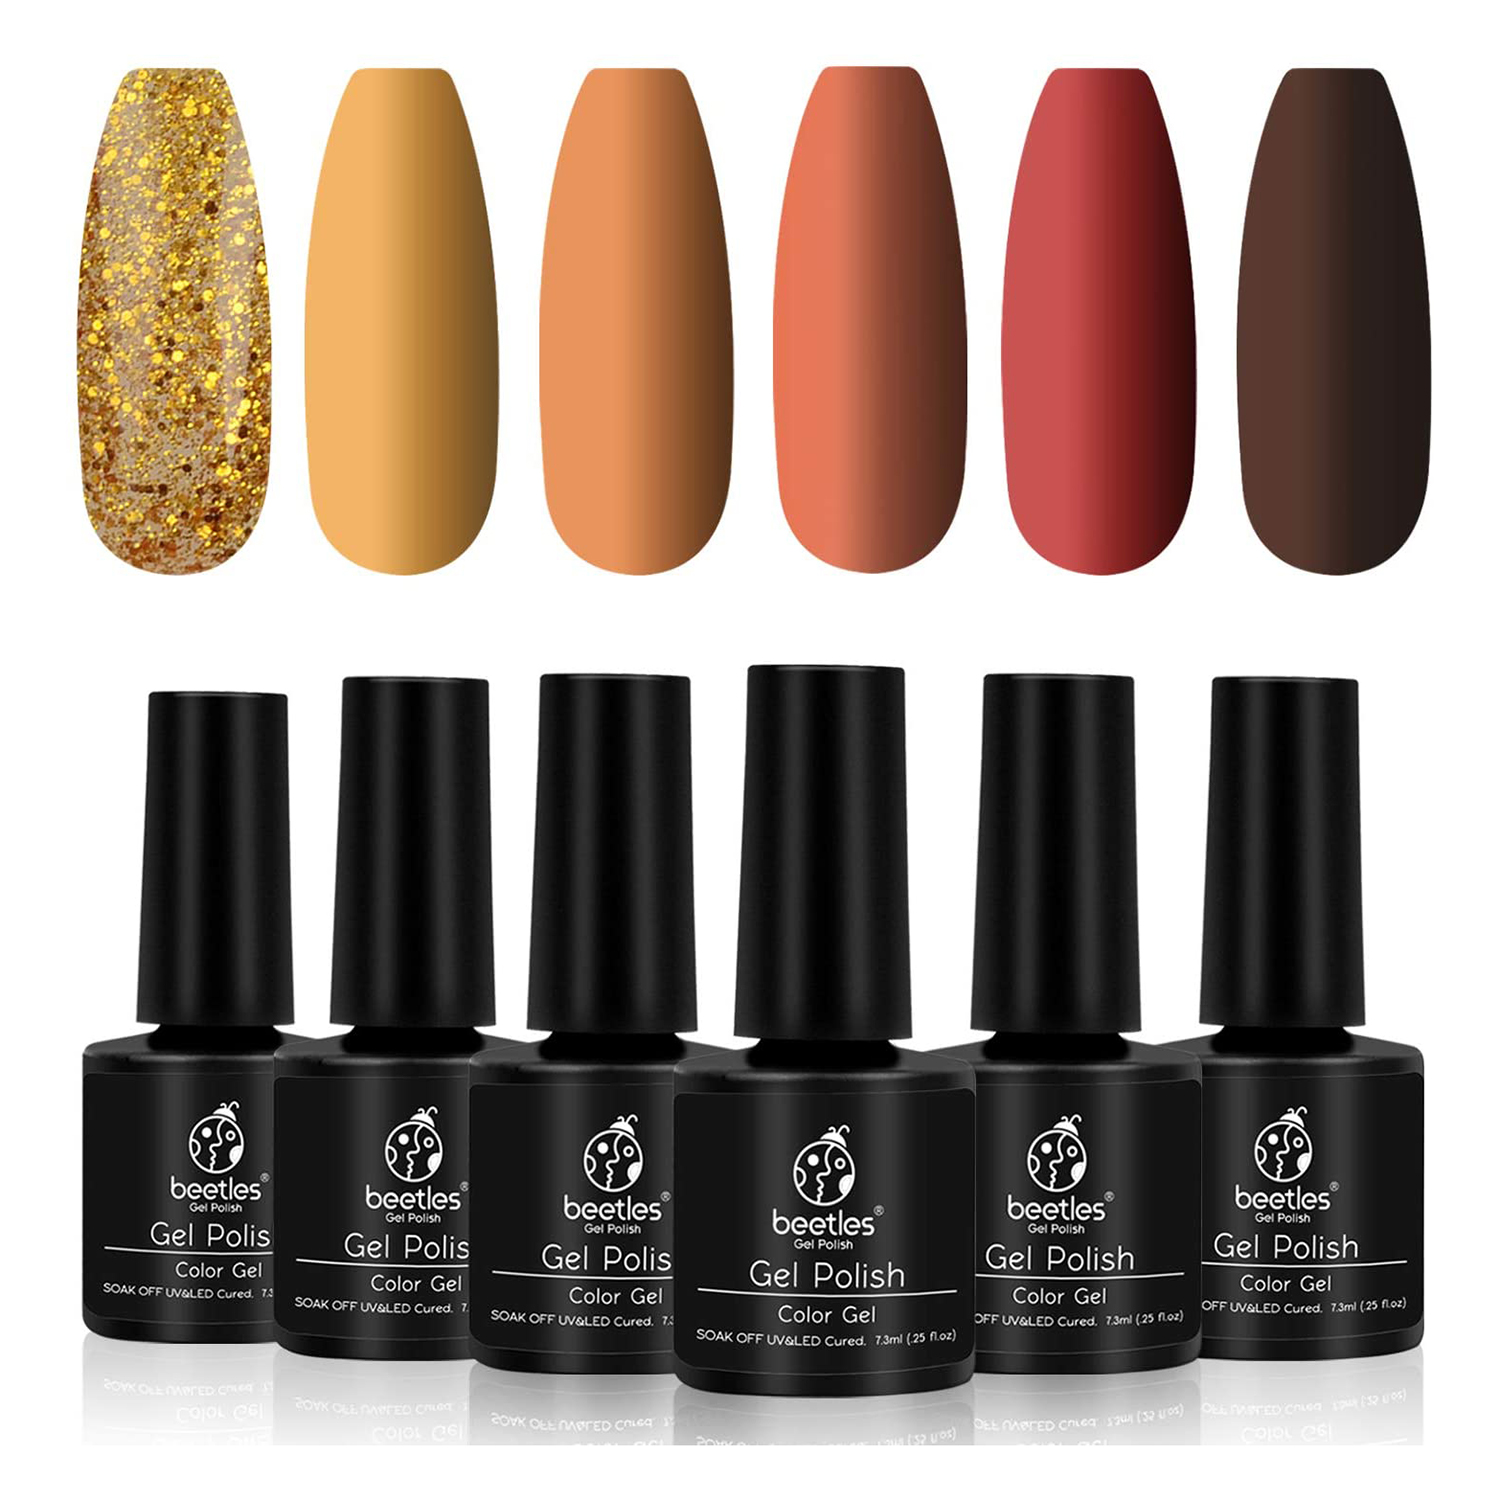 Beetles Gel Polish Set, Pumpkin Spice Yellow Gel Nail Polish Red Orange Glitter Nail Polish Kit Soak